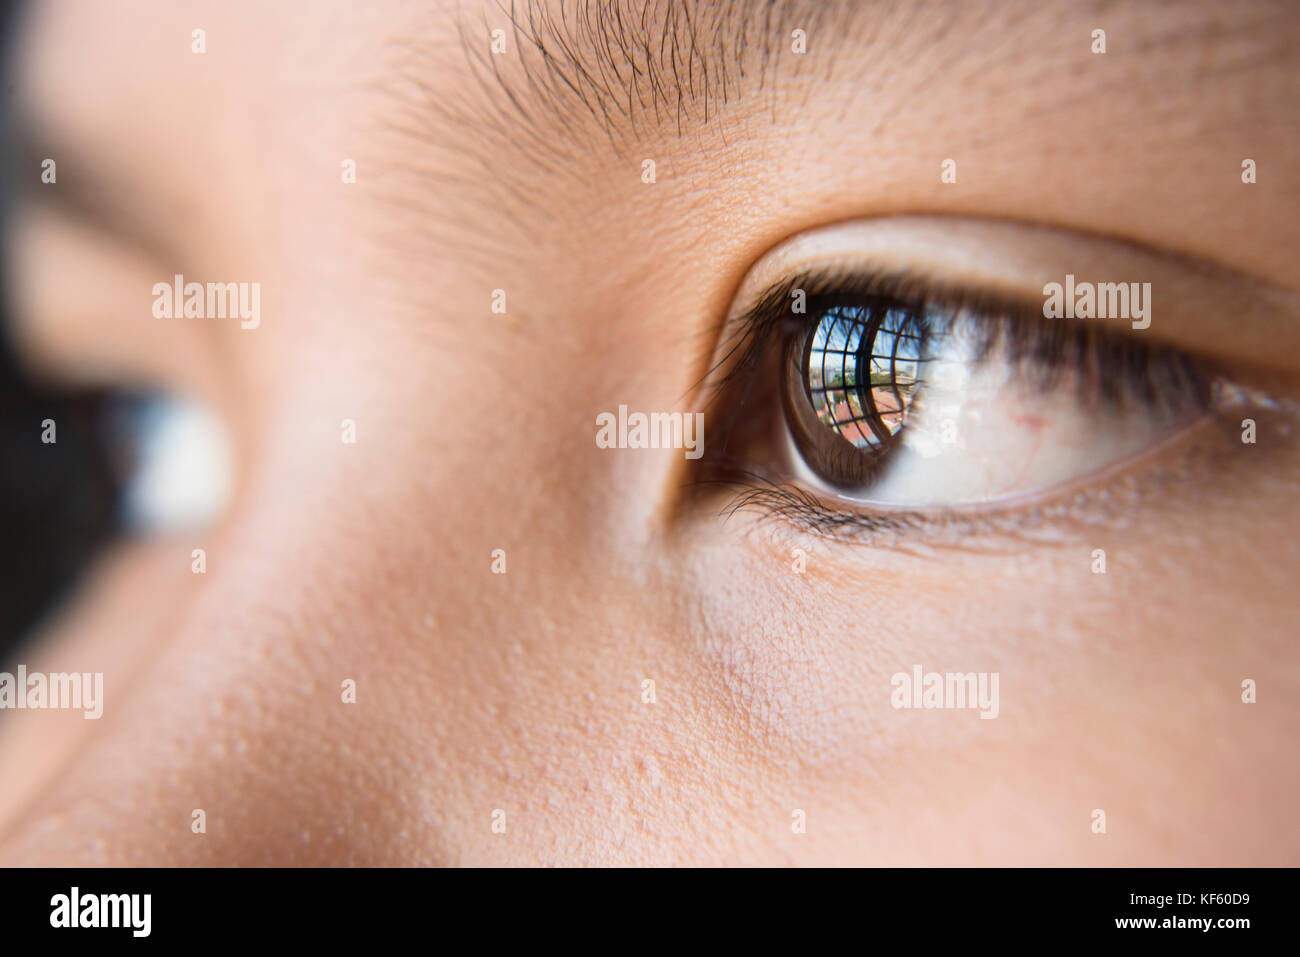 eye looking out to the window - close up of human eye - Stock Image